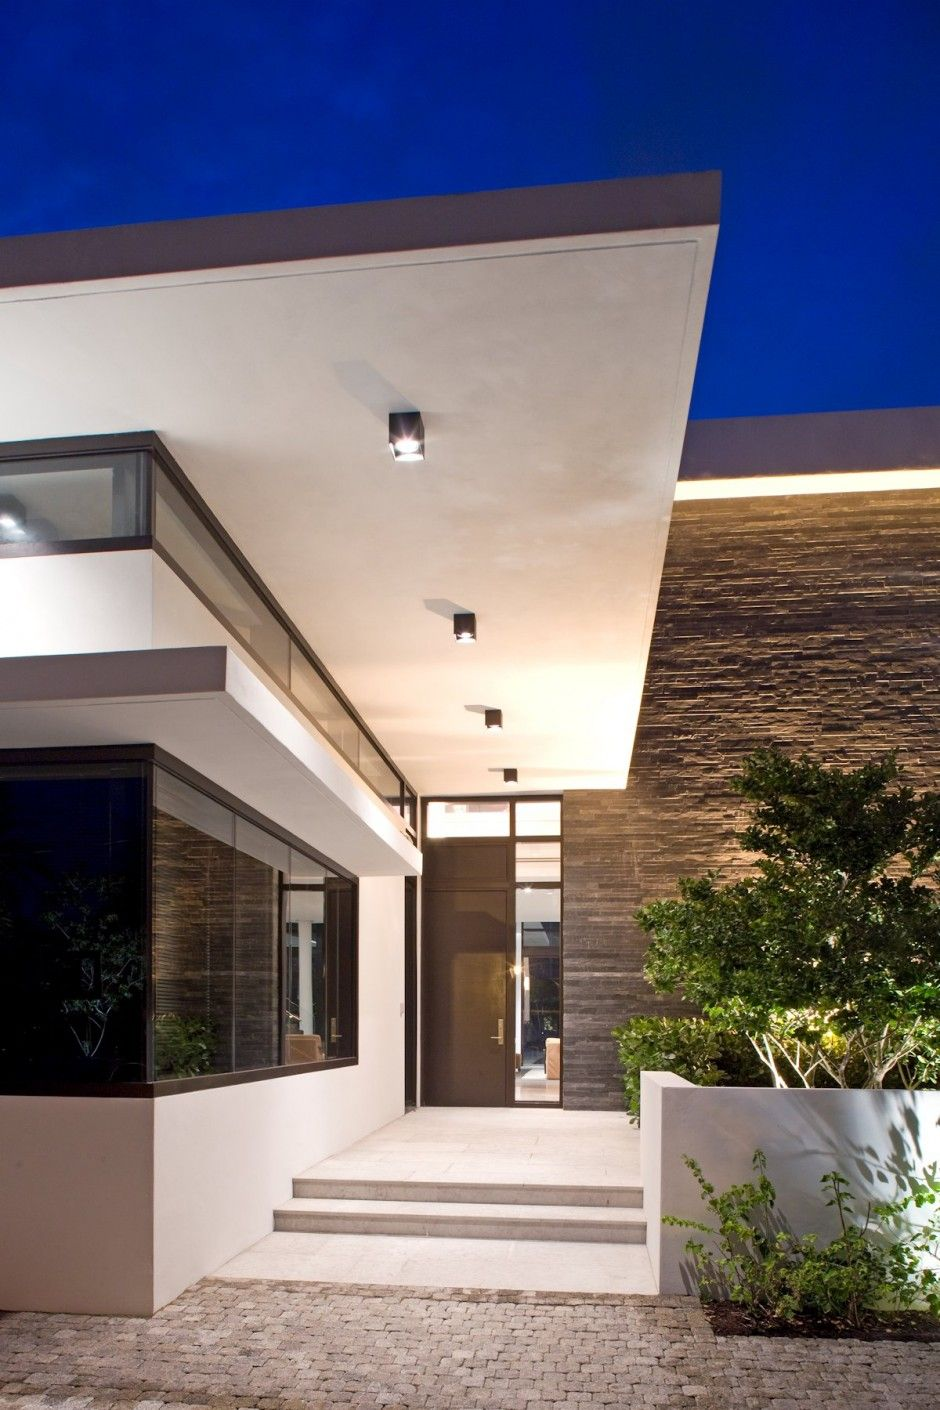 South island residence by kz architecture archimichael pinterest house design - Decorazione archi in casa ...